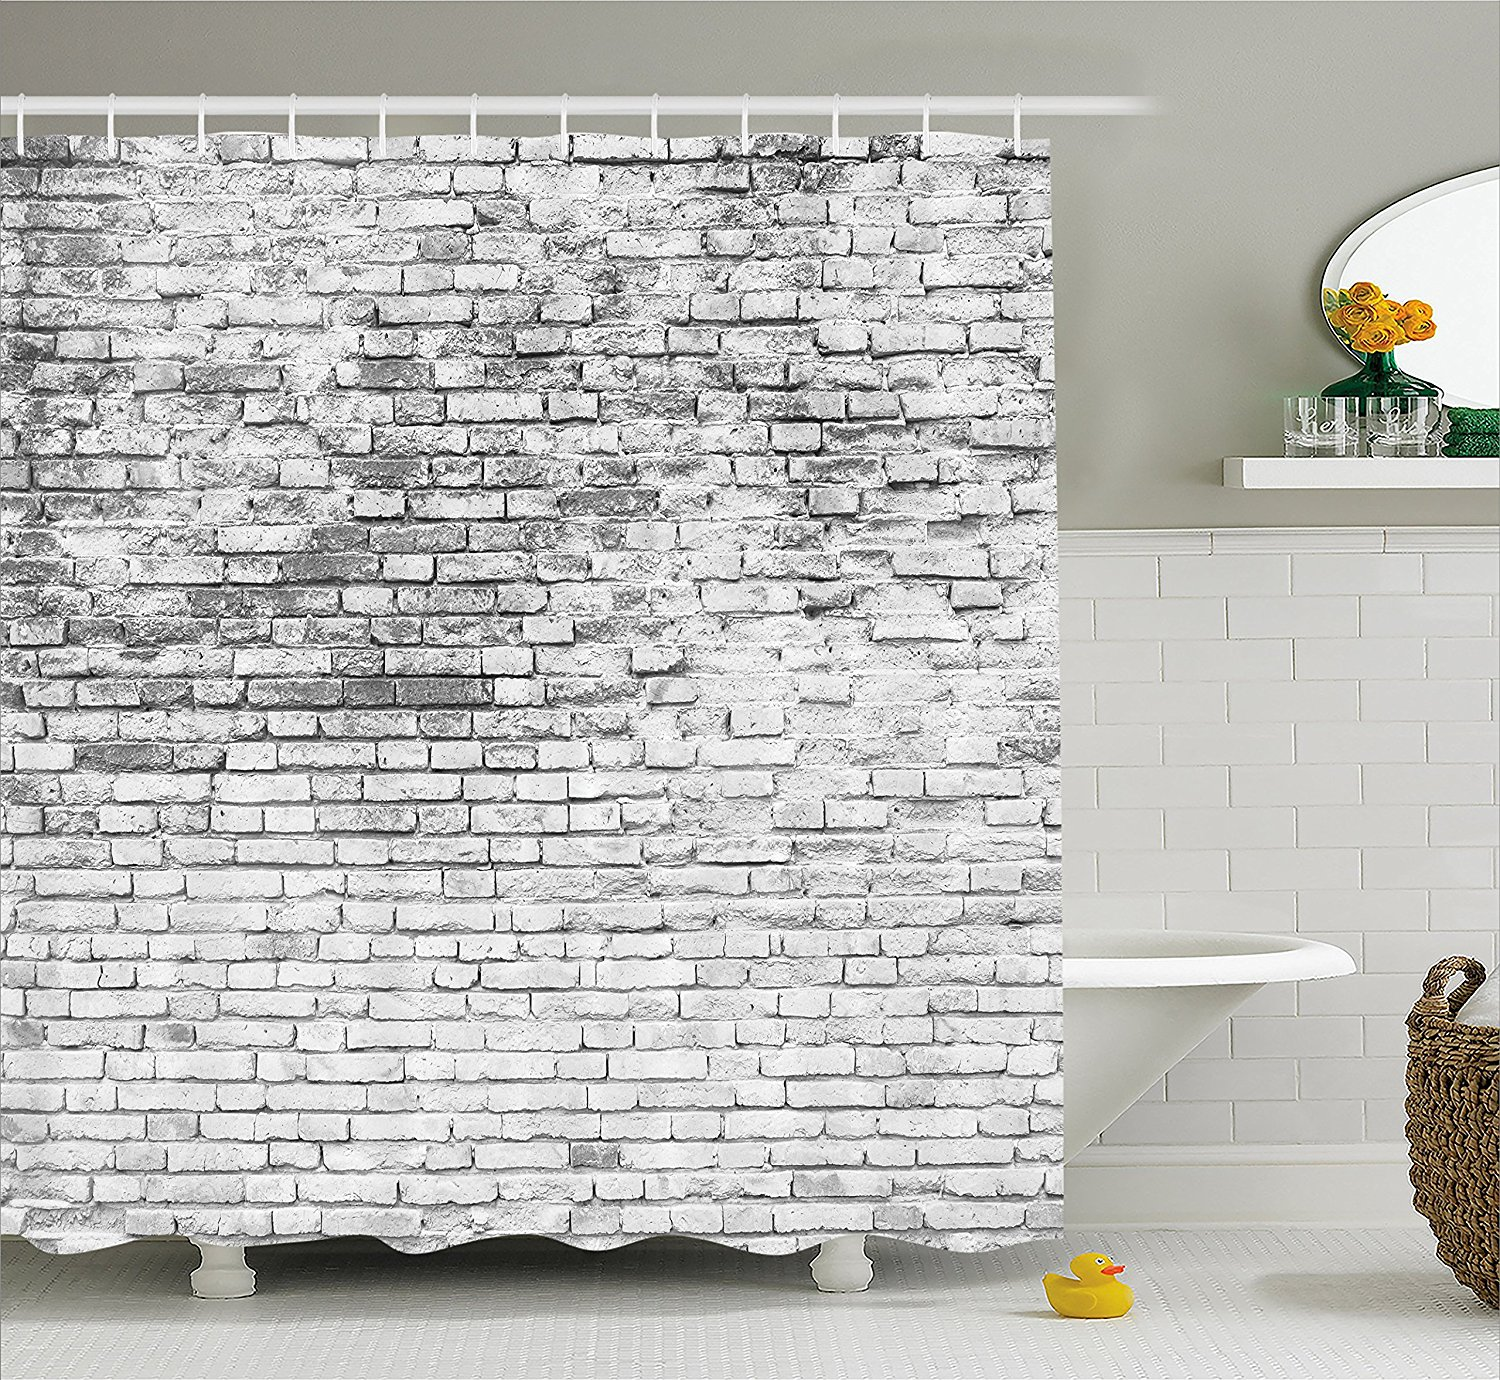 Online Shop Memory Home Rustic Shower Curtain Worn And Cracked Grunge Stained Brick Wall Masonry Architecture Image Fabric Bathroom Decor